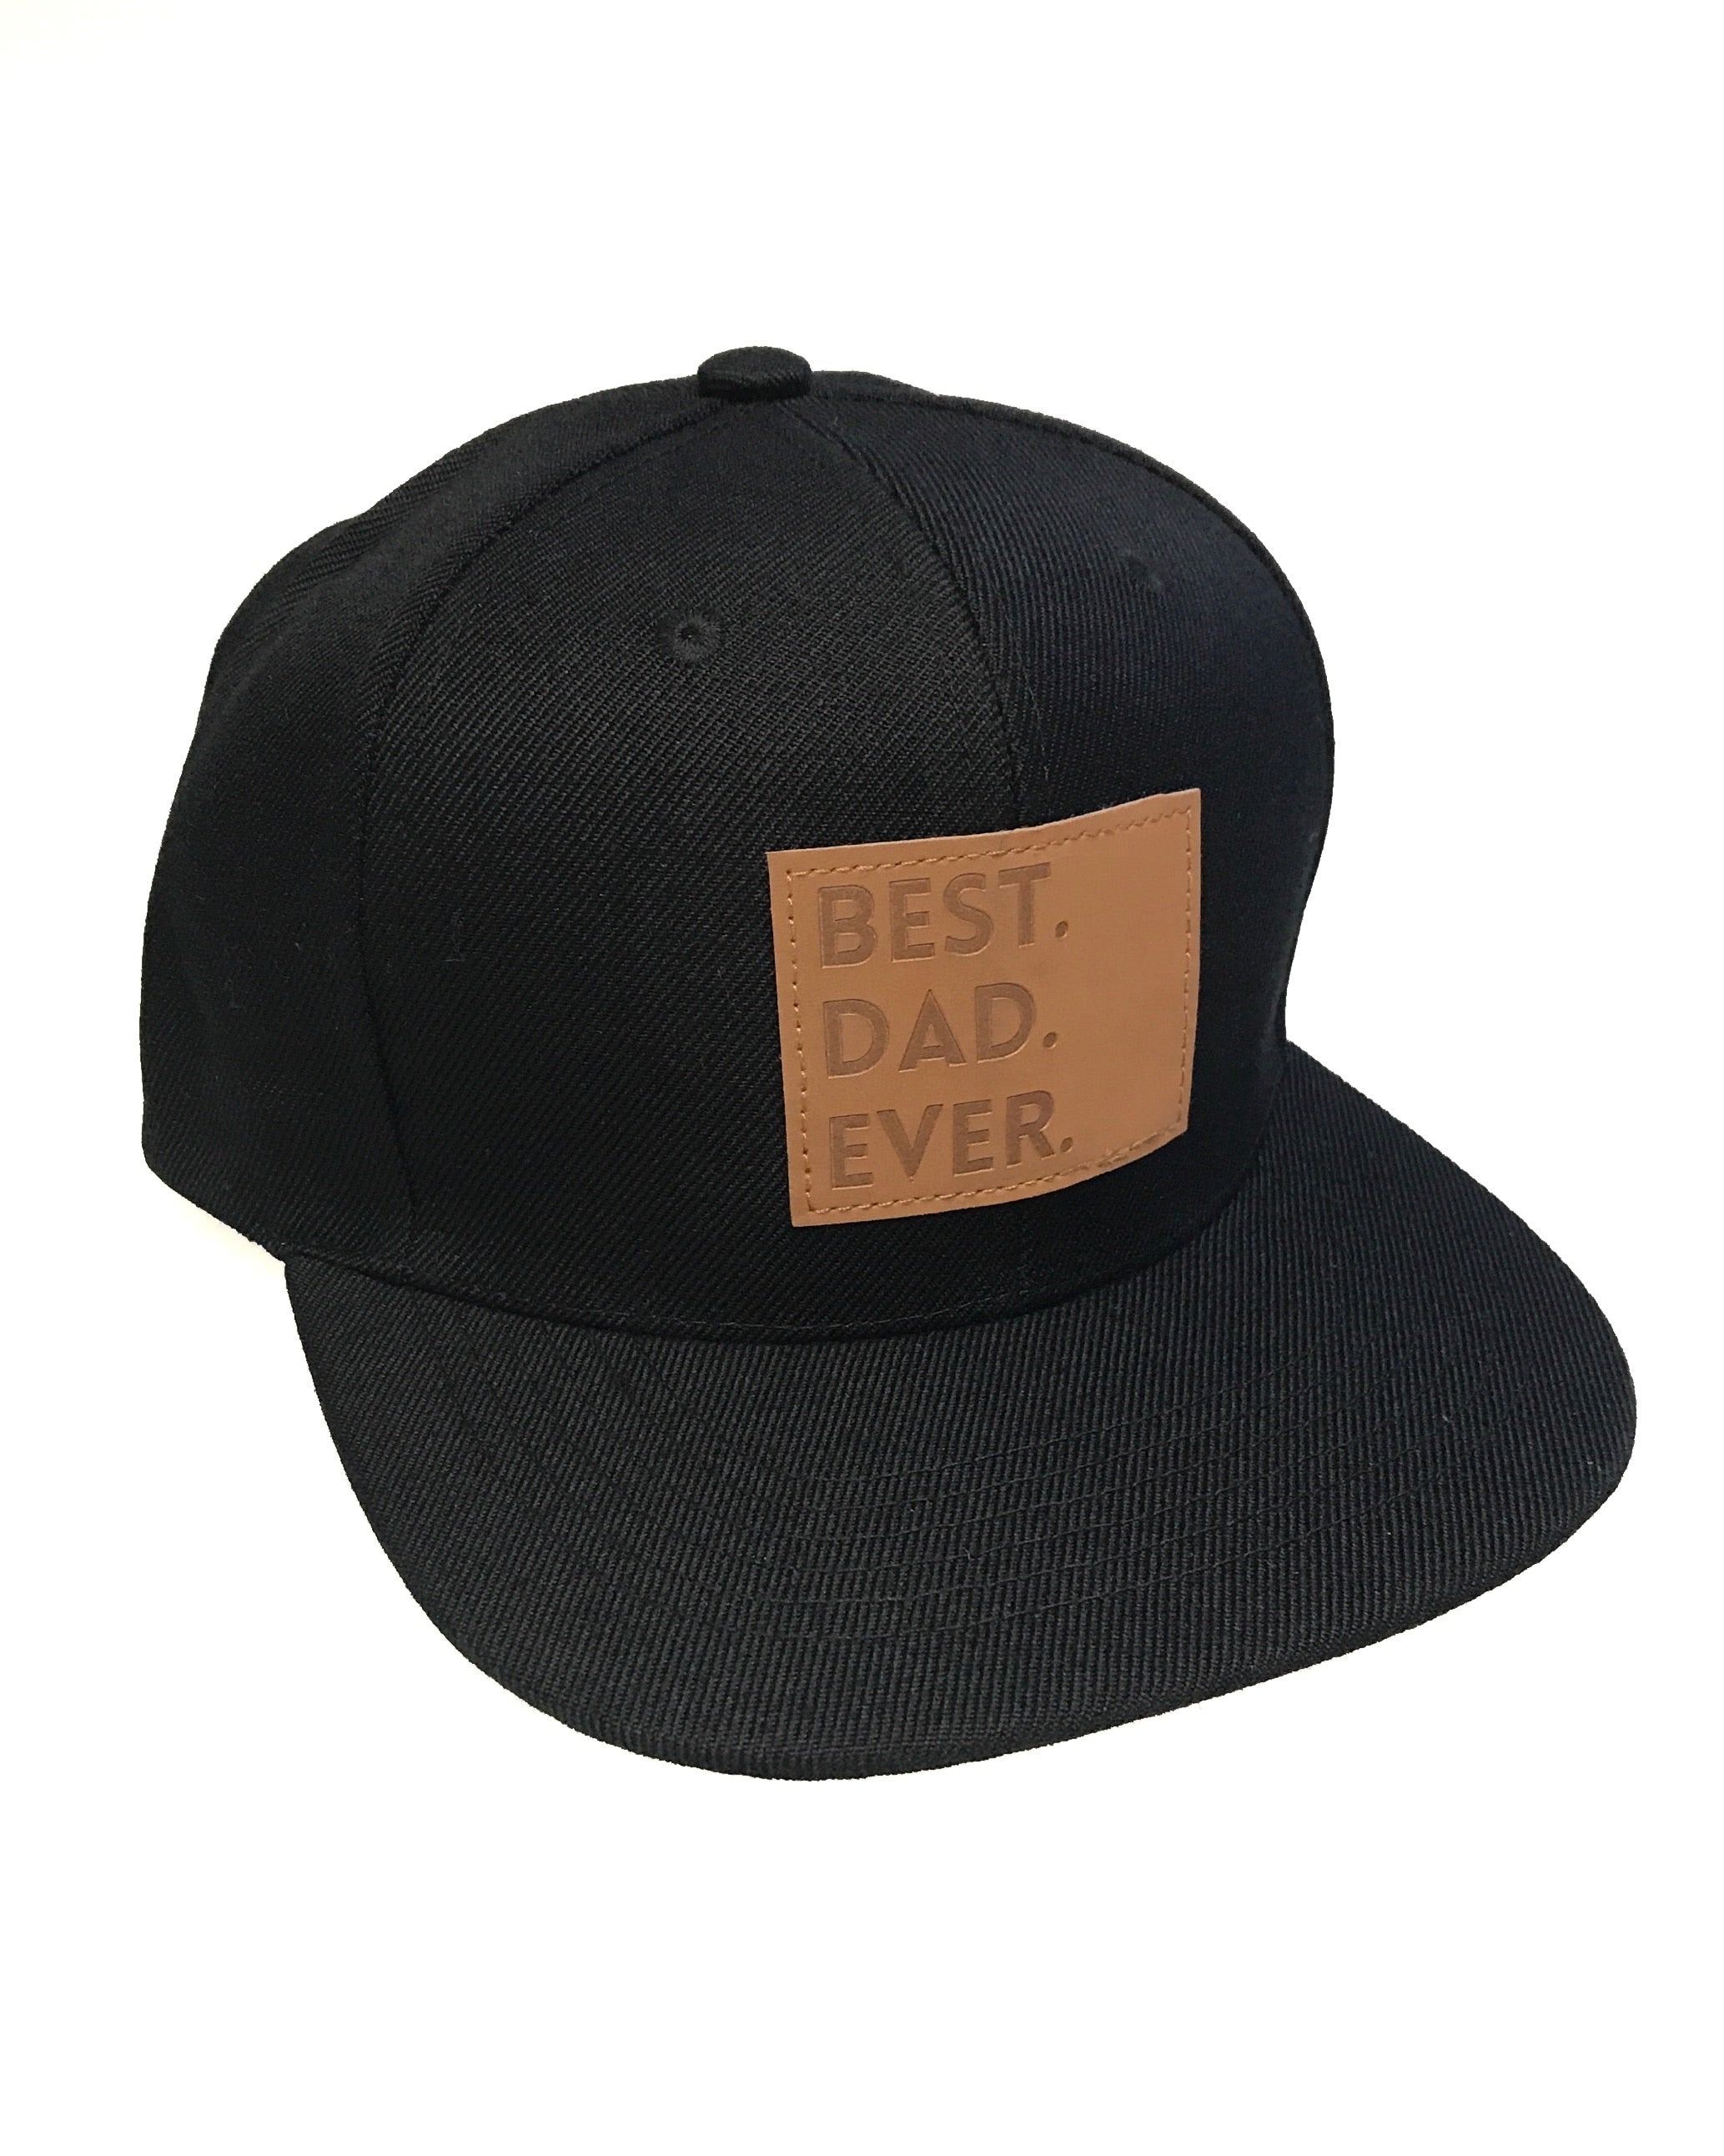 best-dad-ever-hat-black.jpg